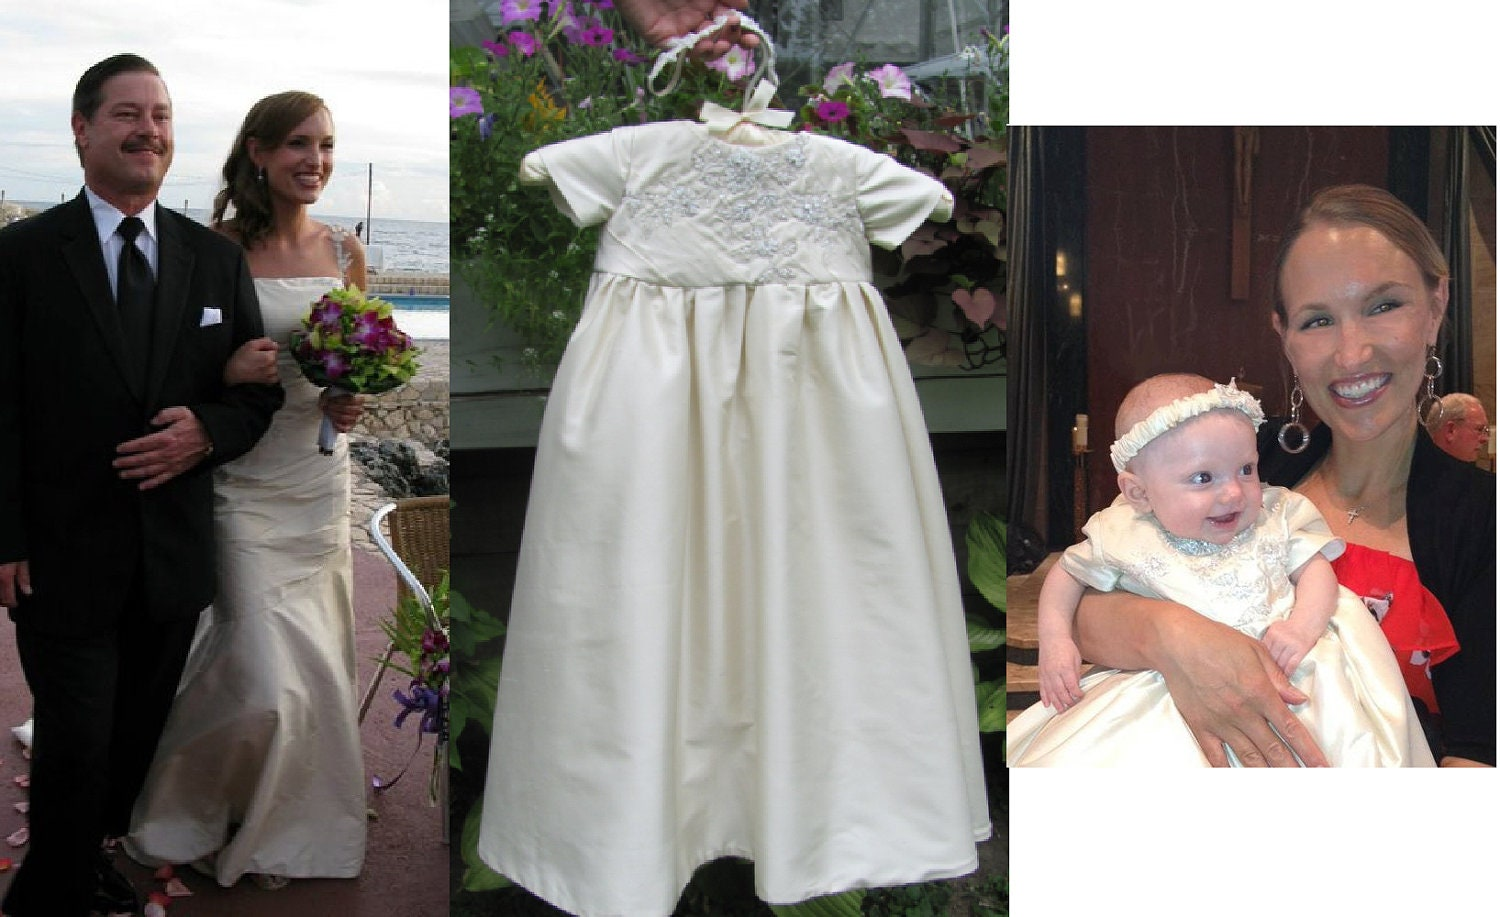 Wedding Dress To Christening Or Baptism Gown Conversion